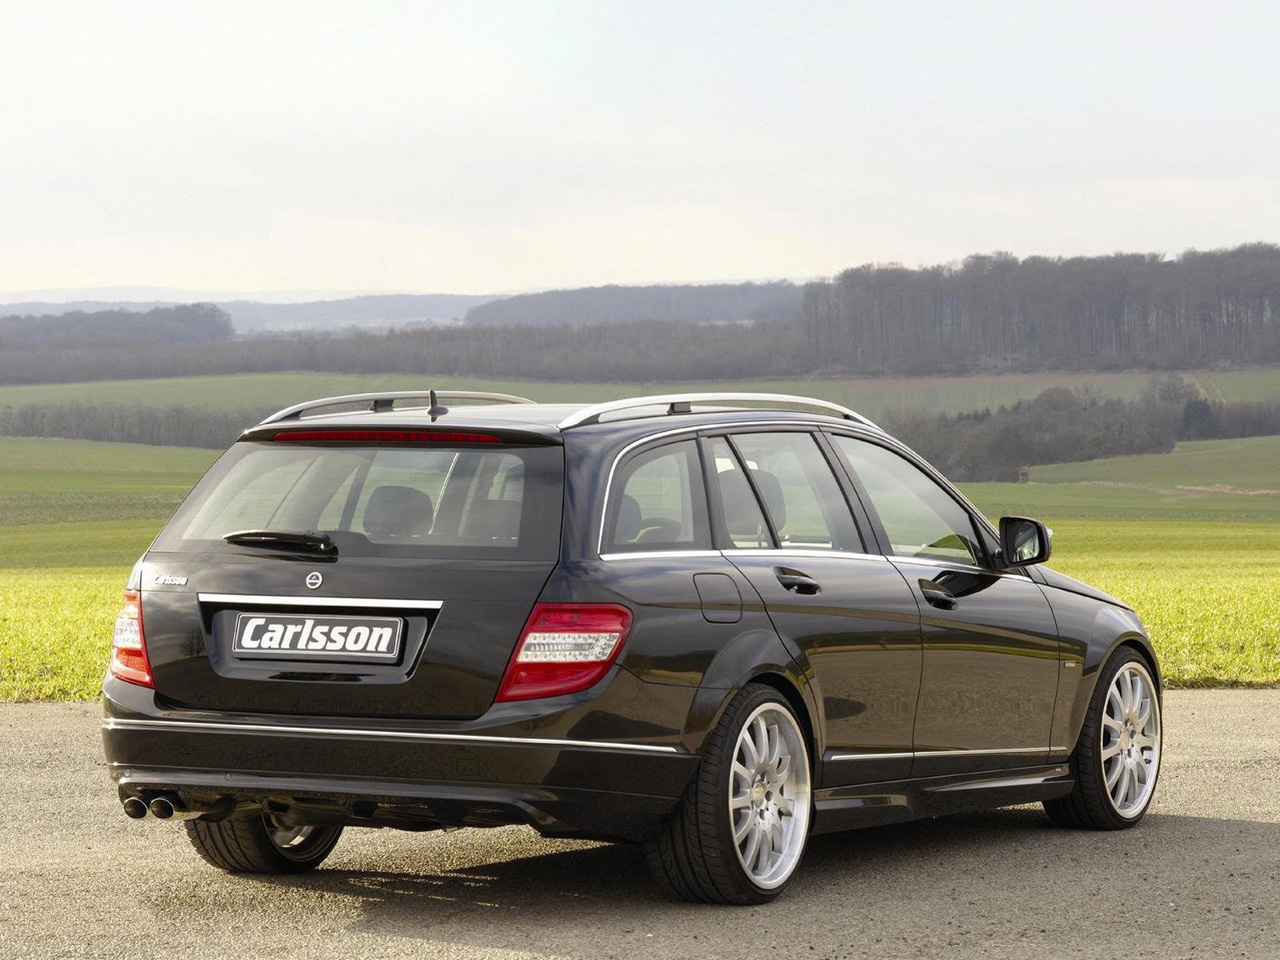 Carlsson C-Class Estate photo 51548